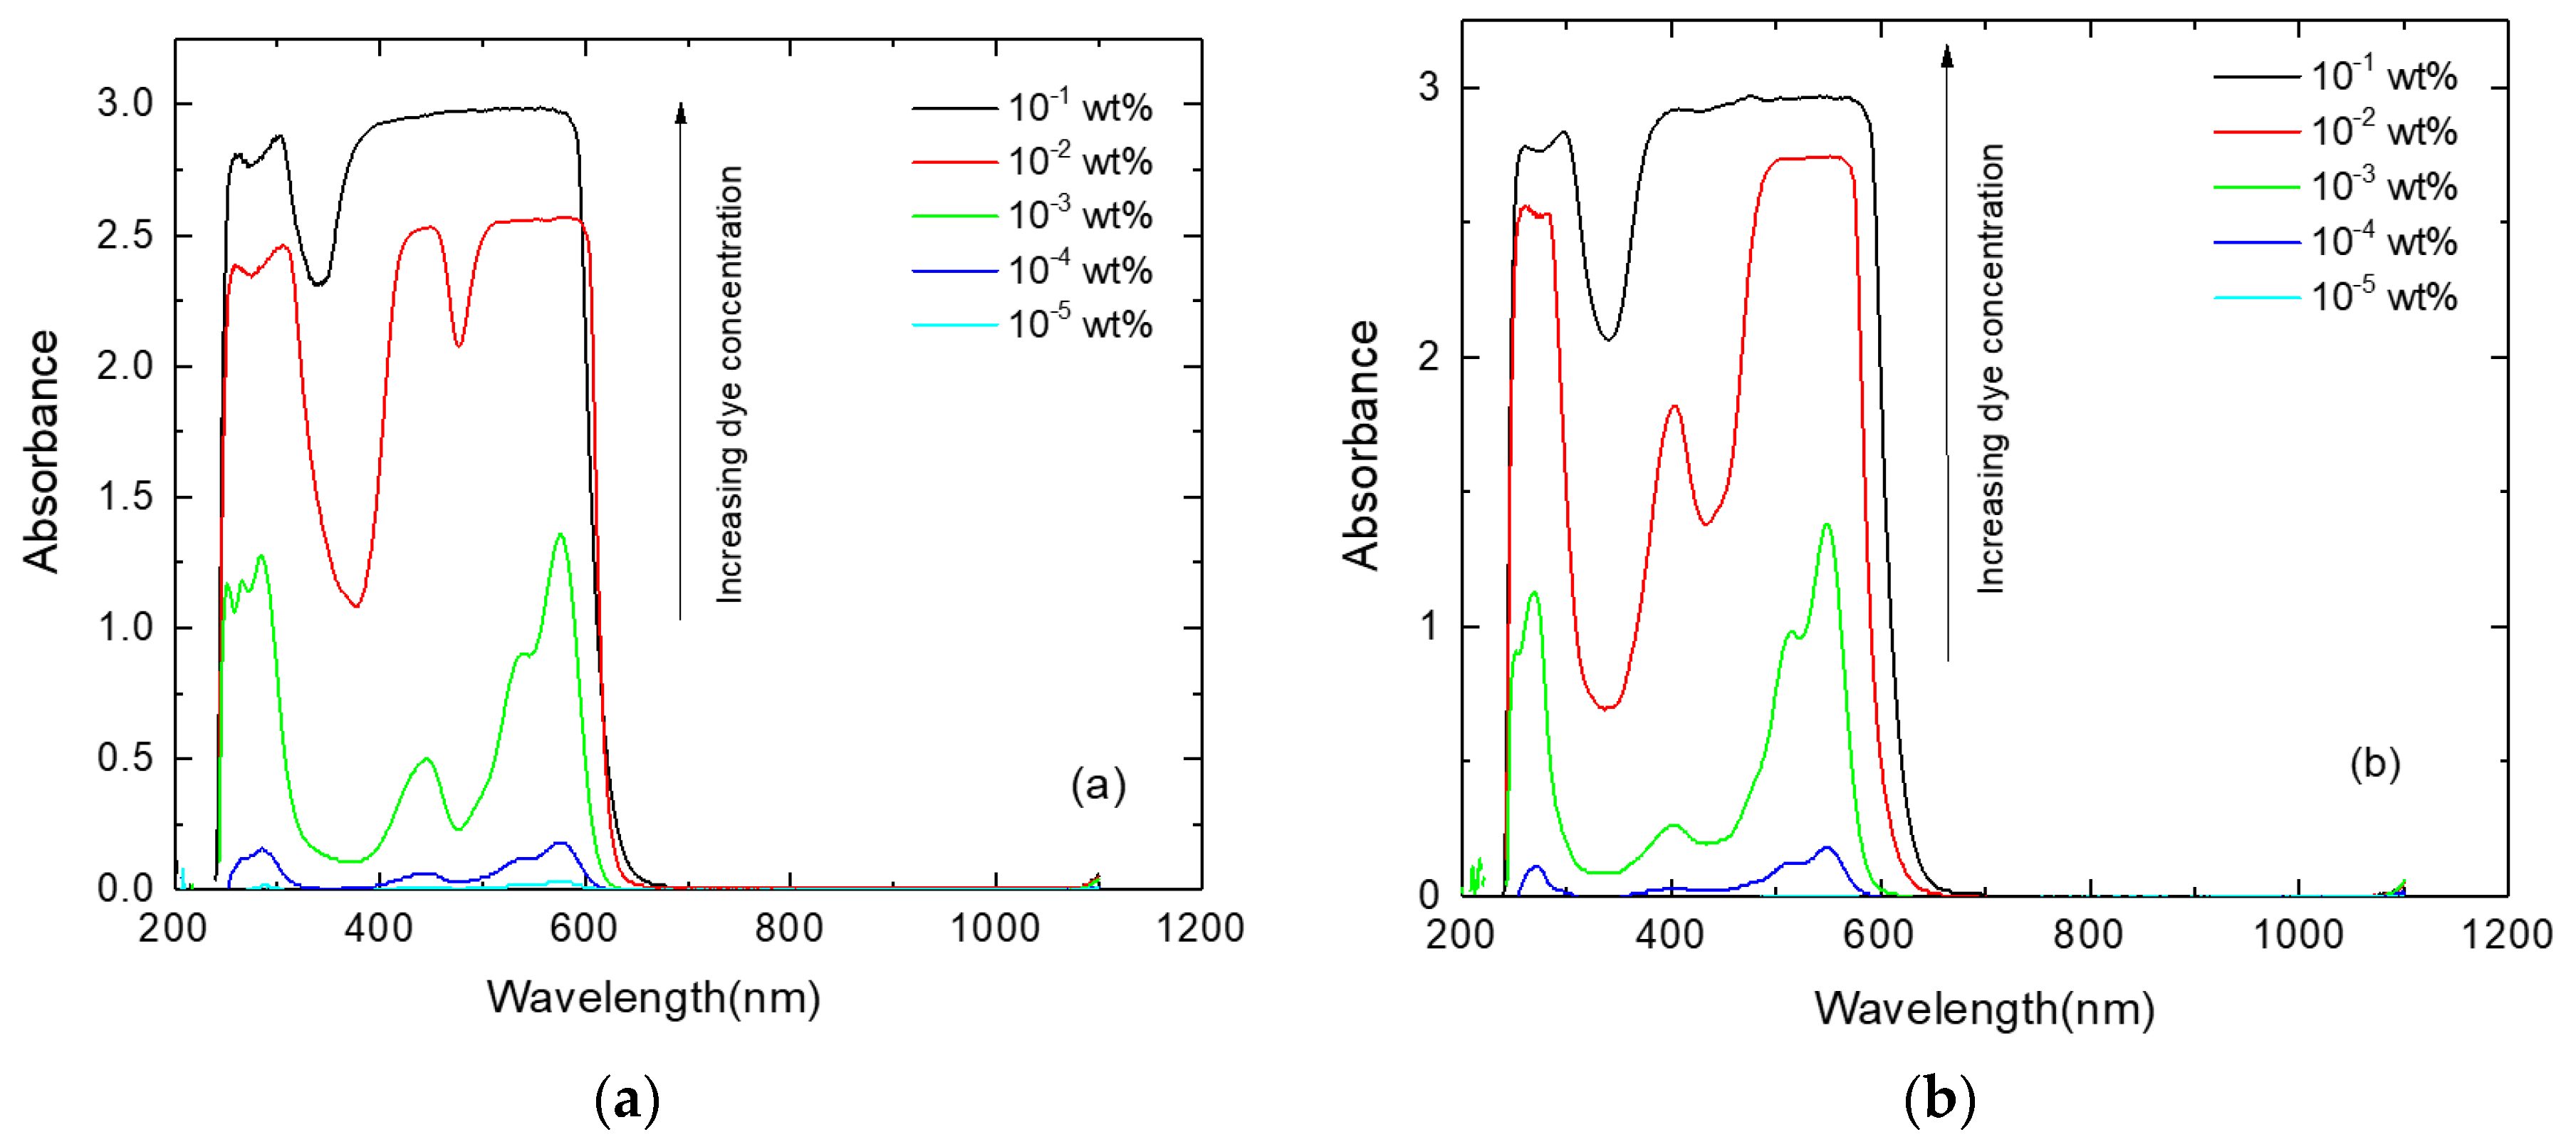 Polymers | Free Full-Text | Spectral Properties of PMMA